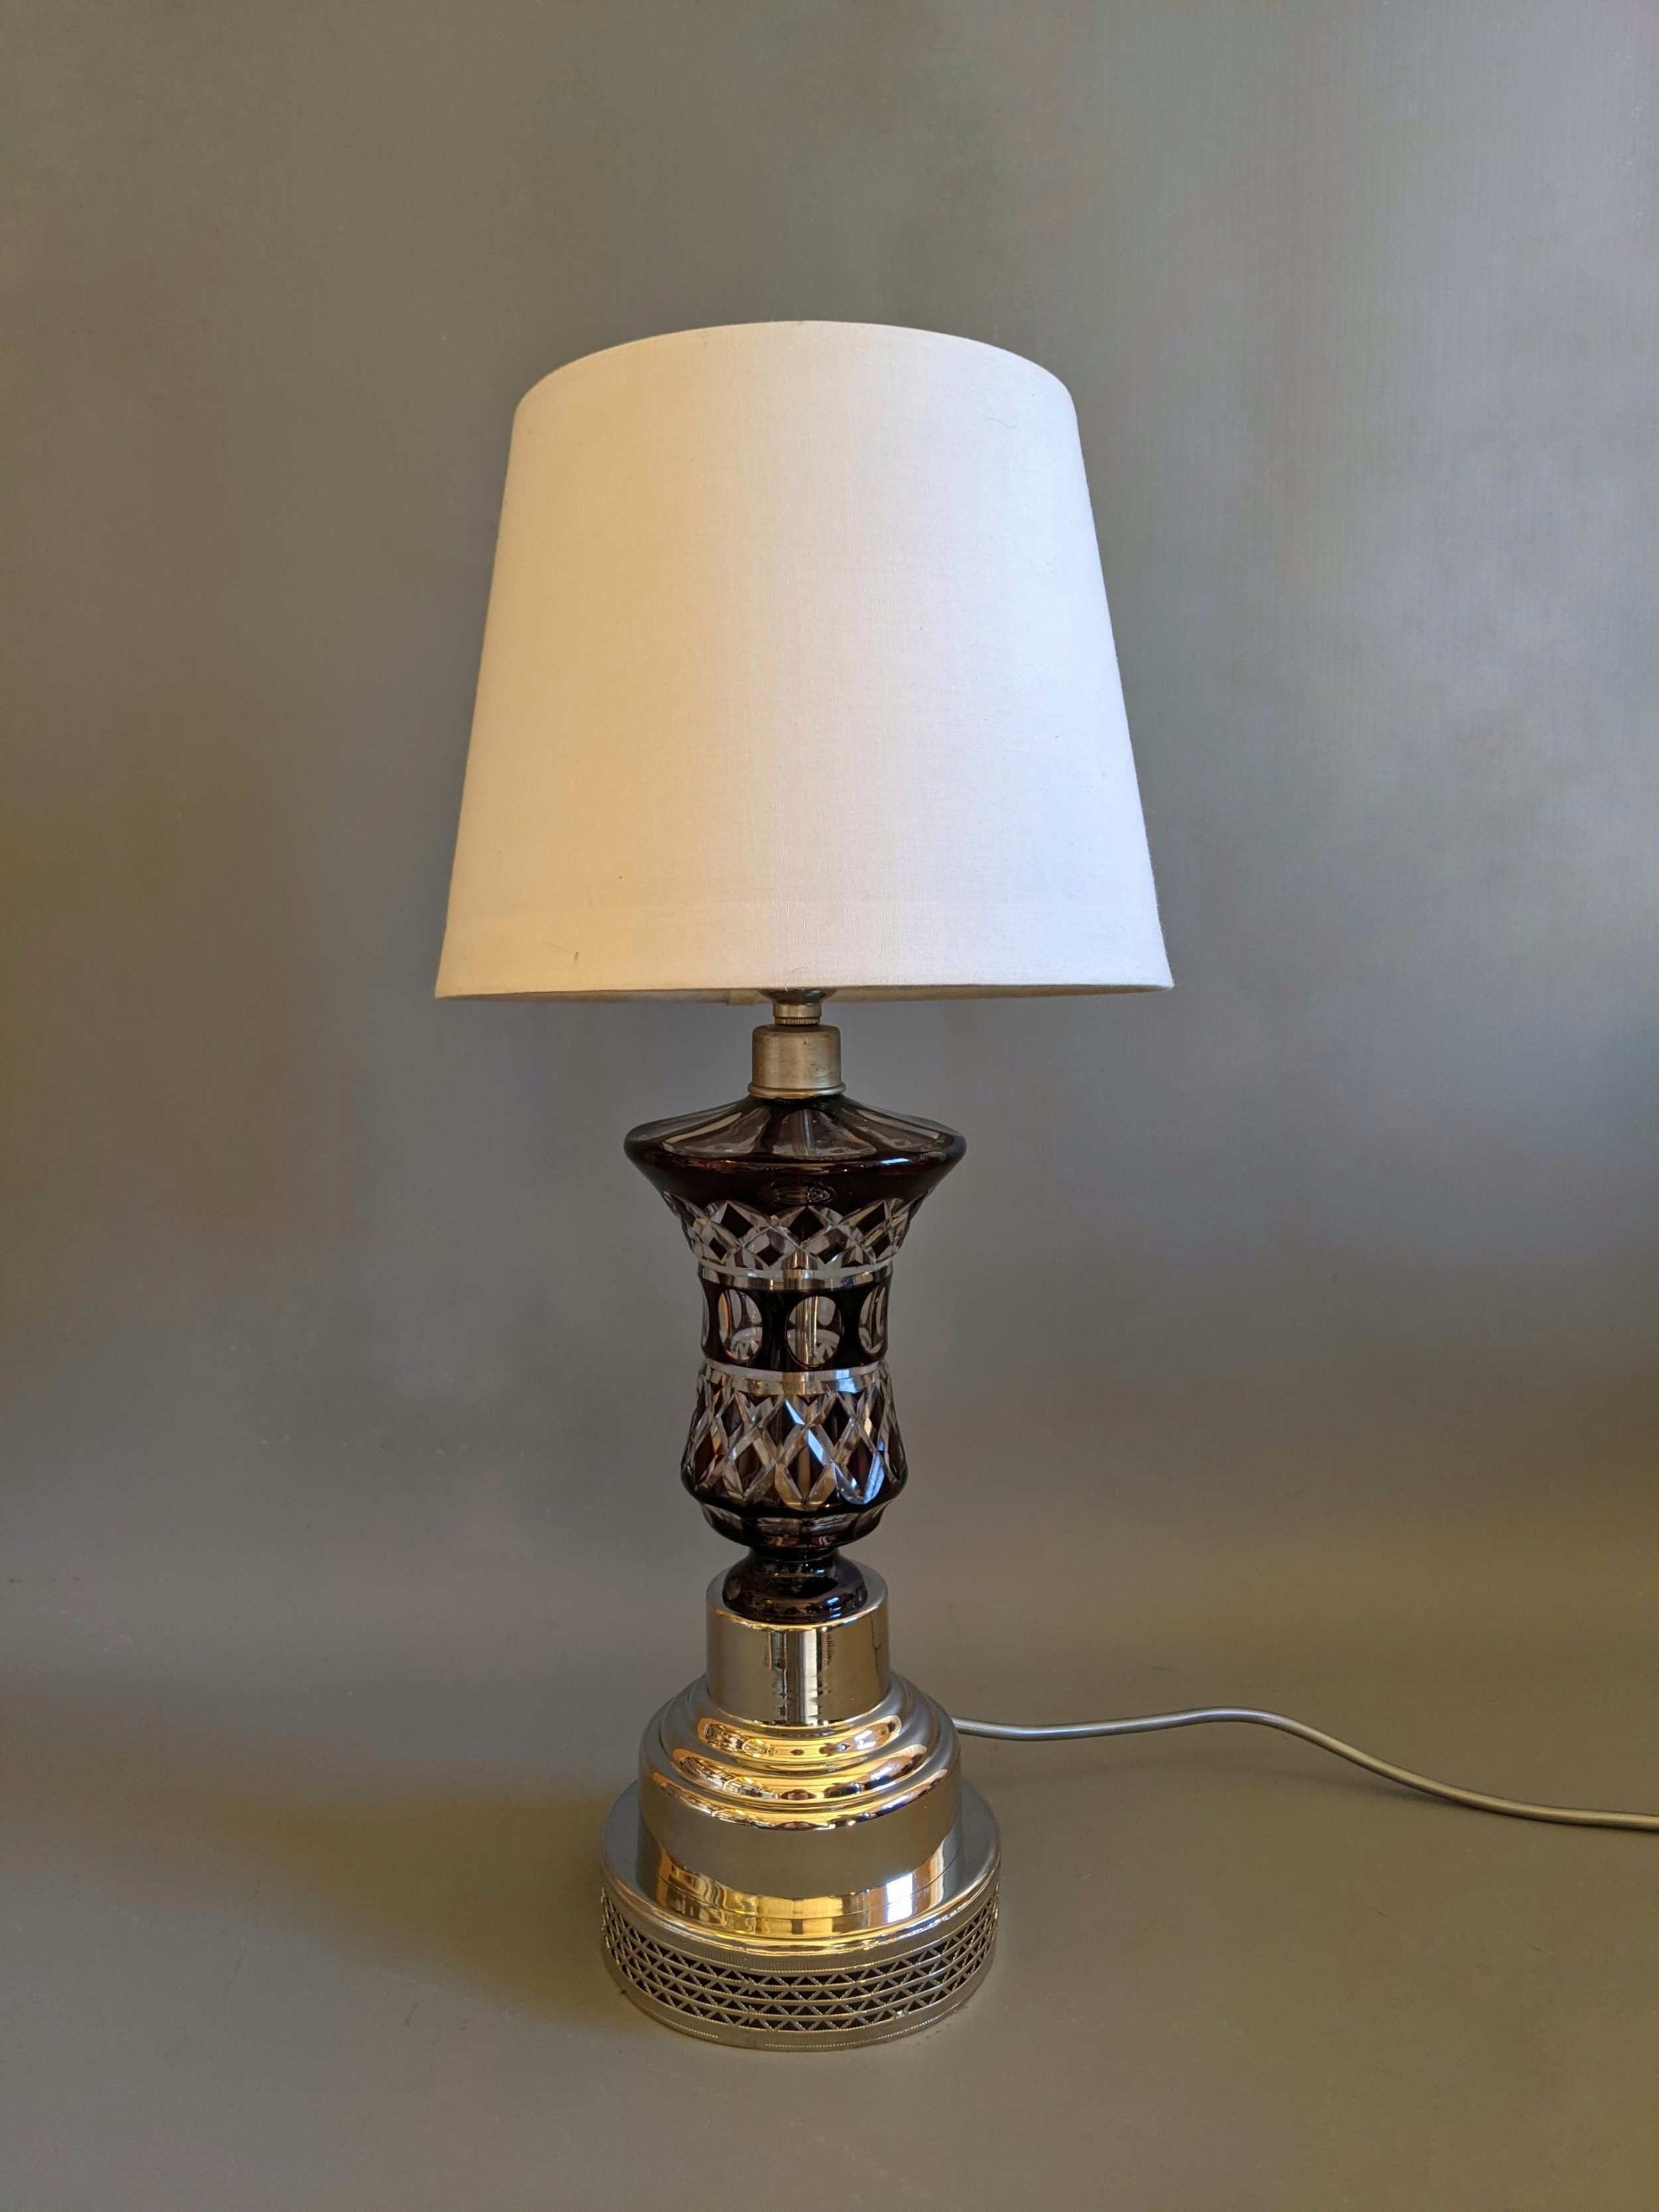 early 20th century glass lamp with cranberry details